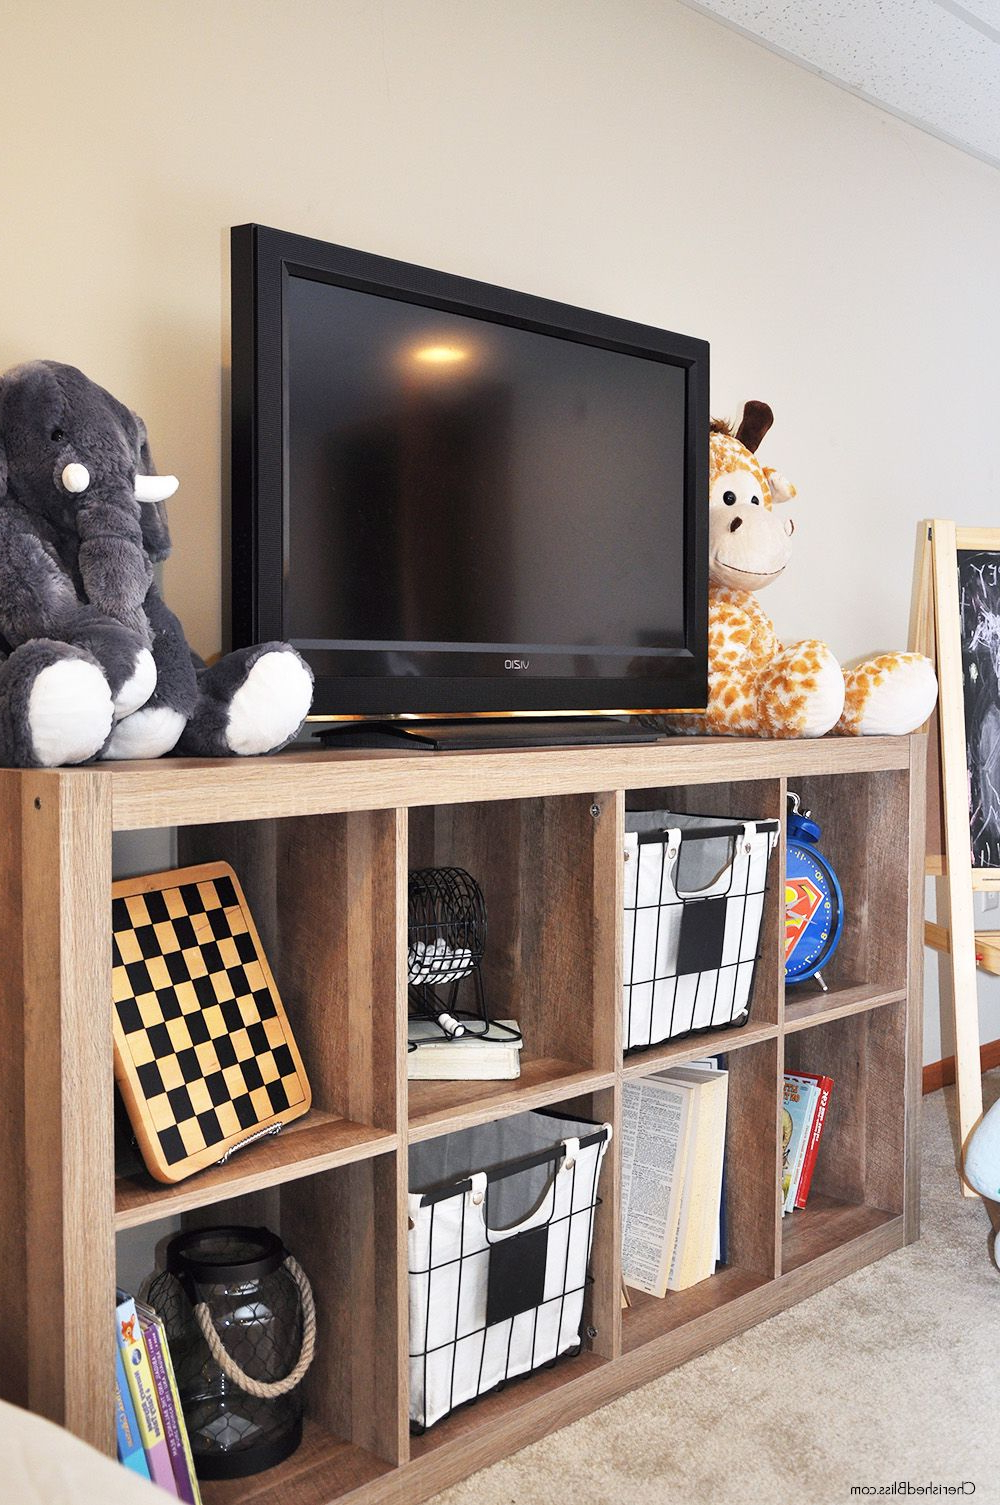 Playroom Progress | Bloggers' Best Diy Ideas | Pinterest | Playroom Throughout Kenzie 72 Inch Open Display Tv Stands (Gallery 16 of 20)